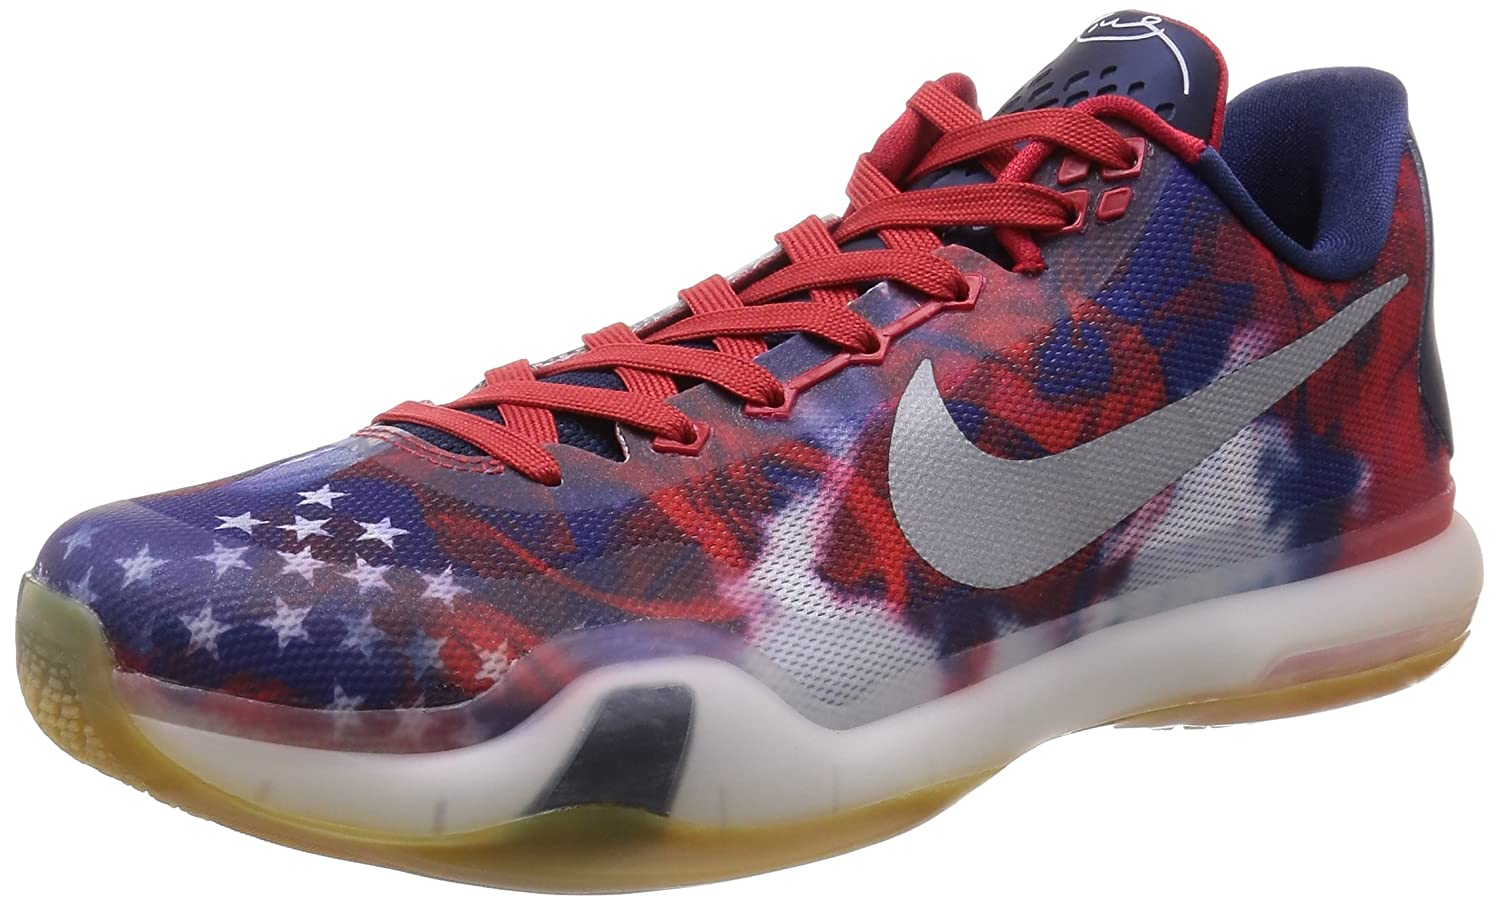 competitive price 69e09 62143 Amazon.com   Nike Men s Kobe X Basketball Shoes Sneakers   Basketball